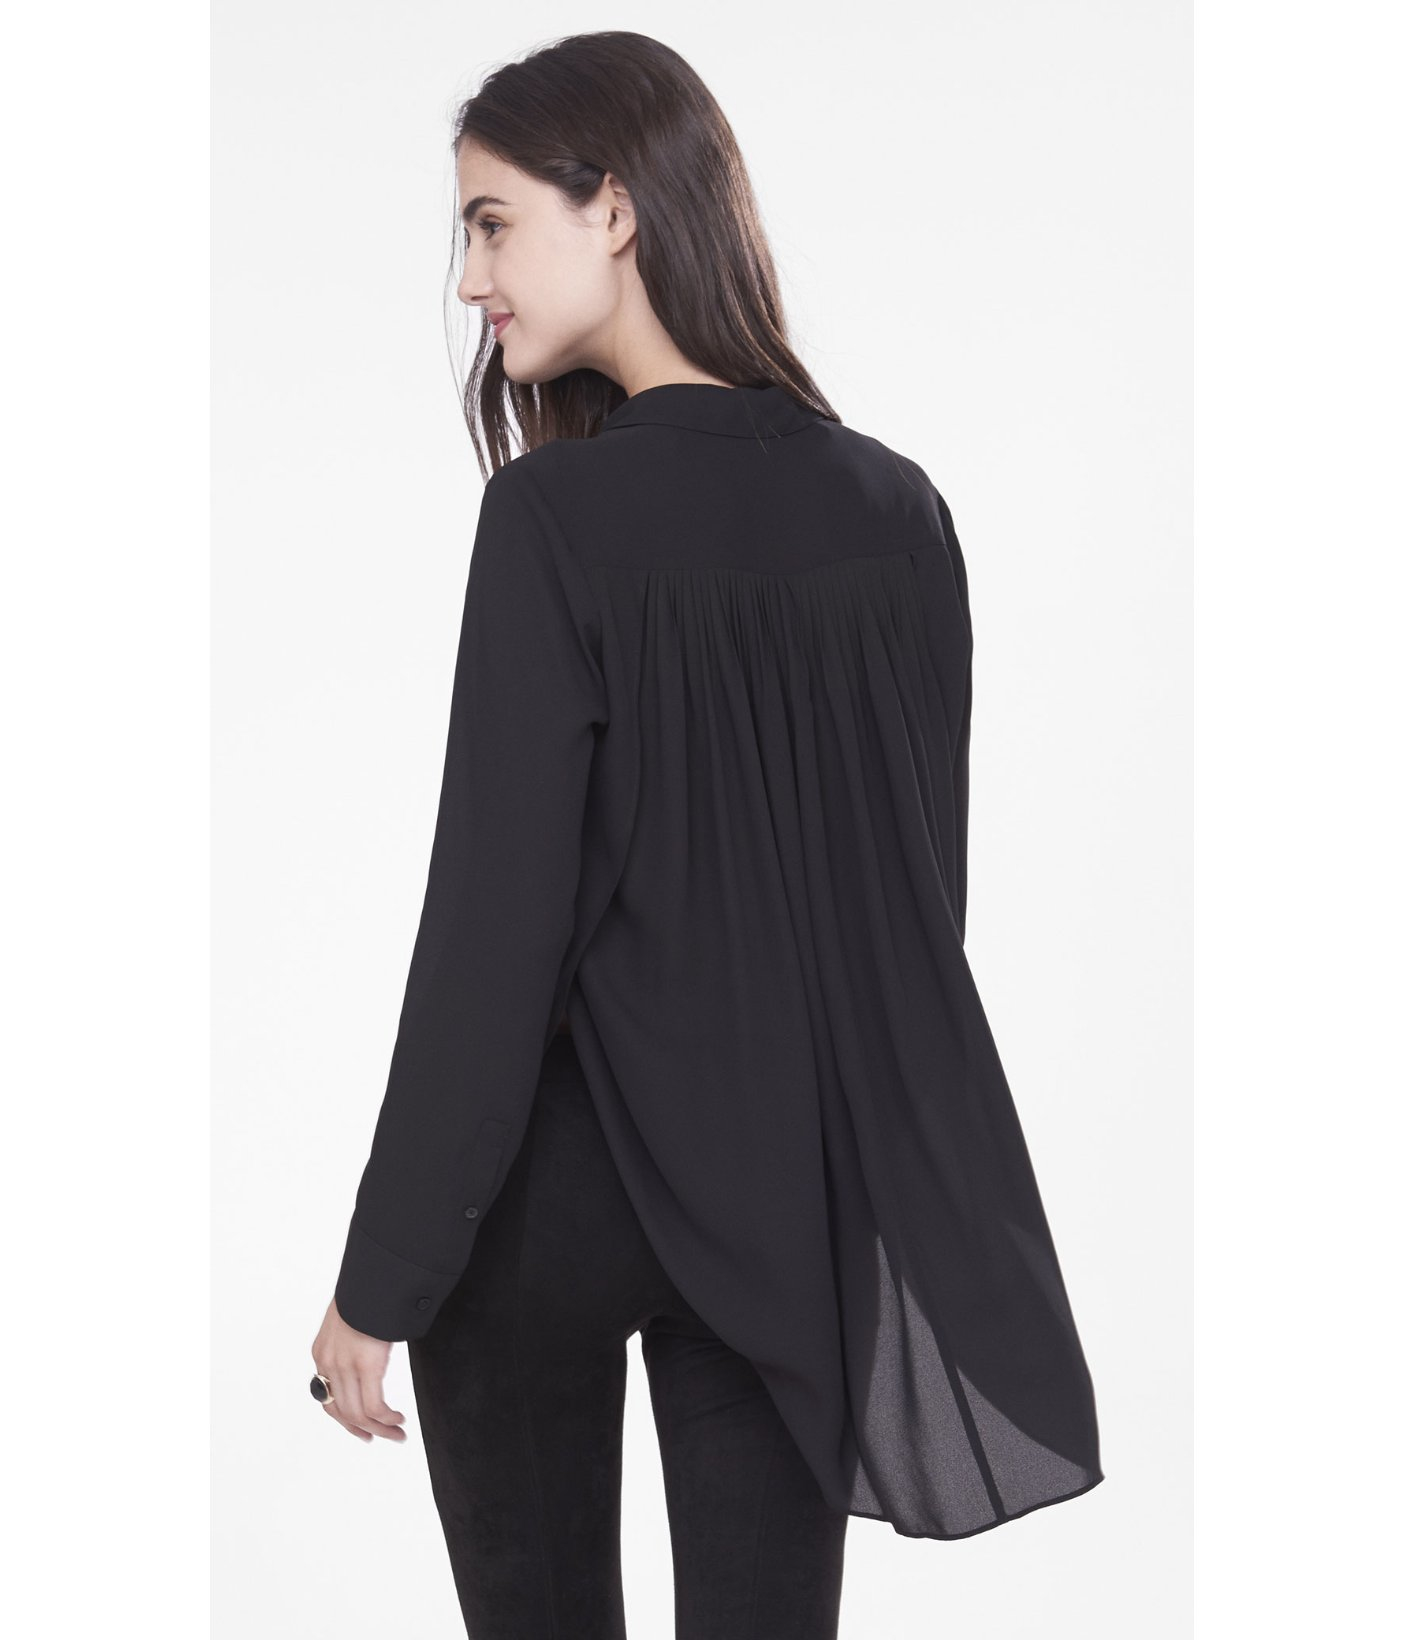 Find long sleeve or sleeveless tunics and everything in between. Floaty light-weight tunics won't cling in the summer heat, and heavier tunic tops are easy to layer in office AC or colder temperatures. Pick up swingy A-line tunics or clingy knits. From dolman to flutter sleeve, our tunics cover a range of styles.